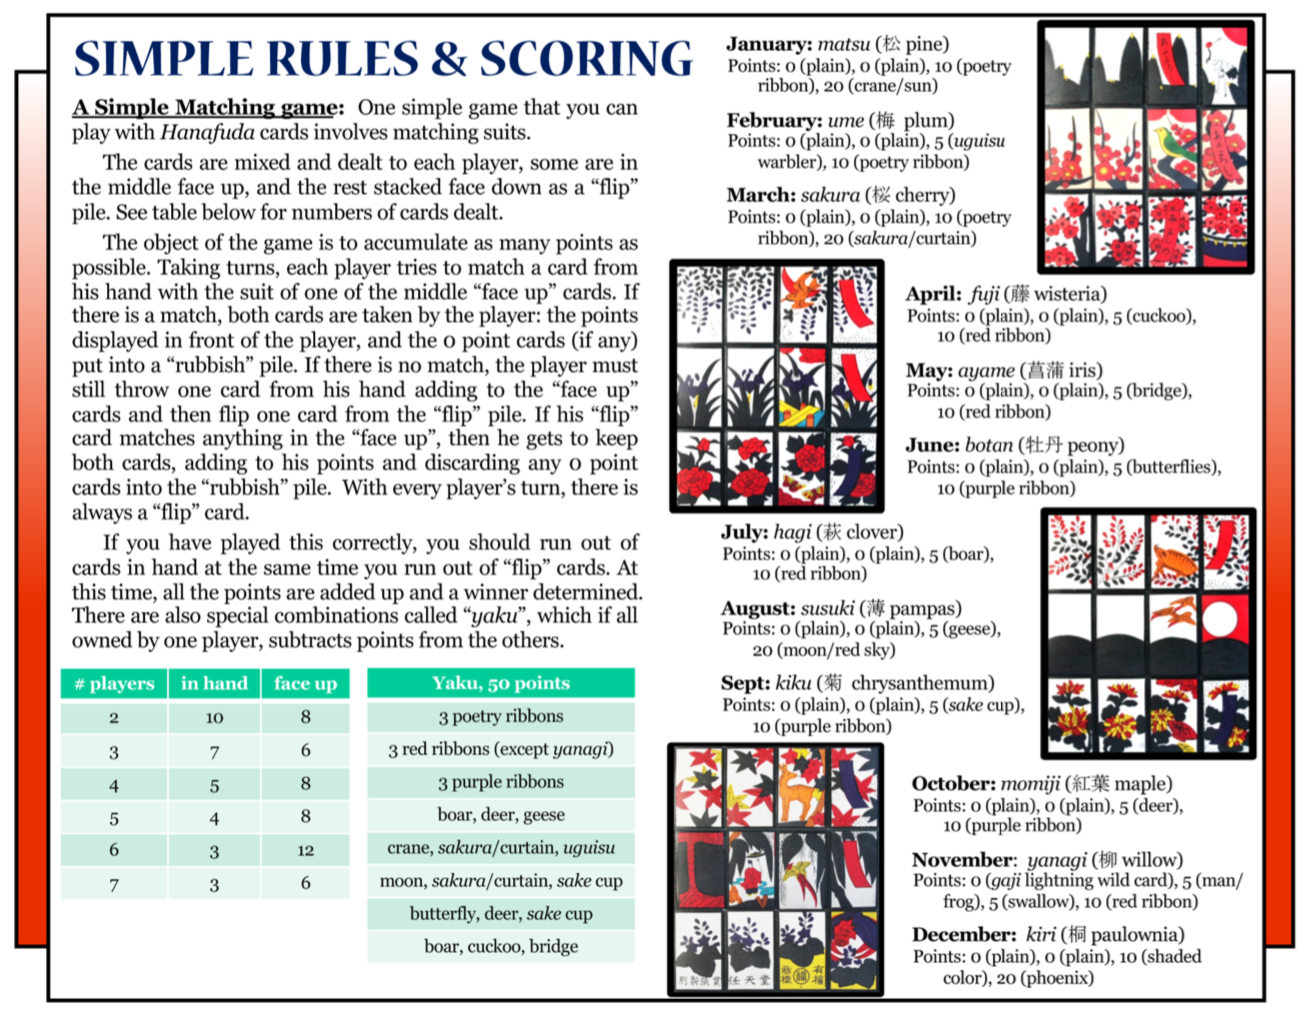 Culture4Kids! - Simple Rules and Scoring for 'Hanafuda'